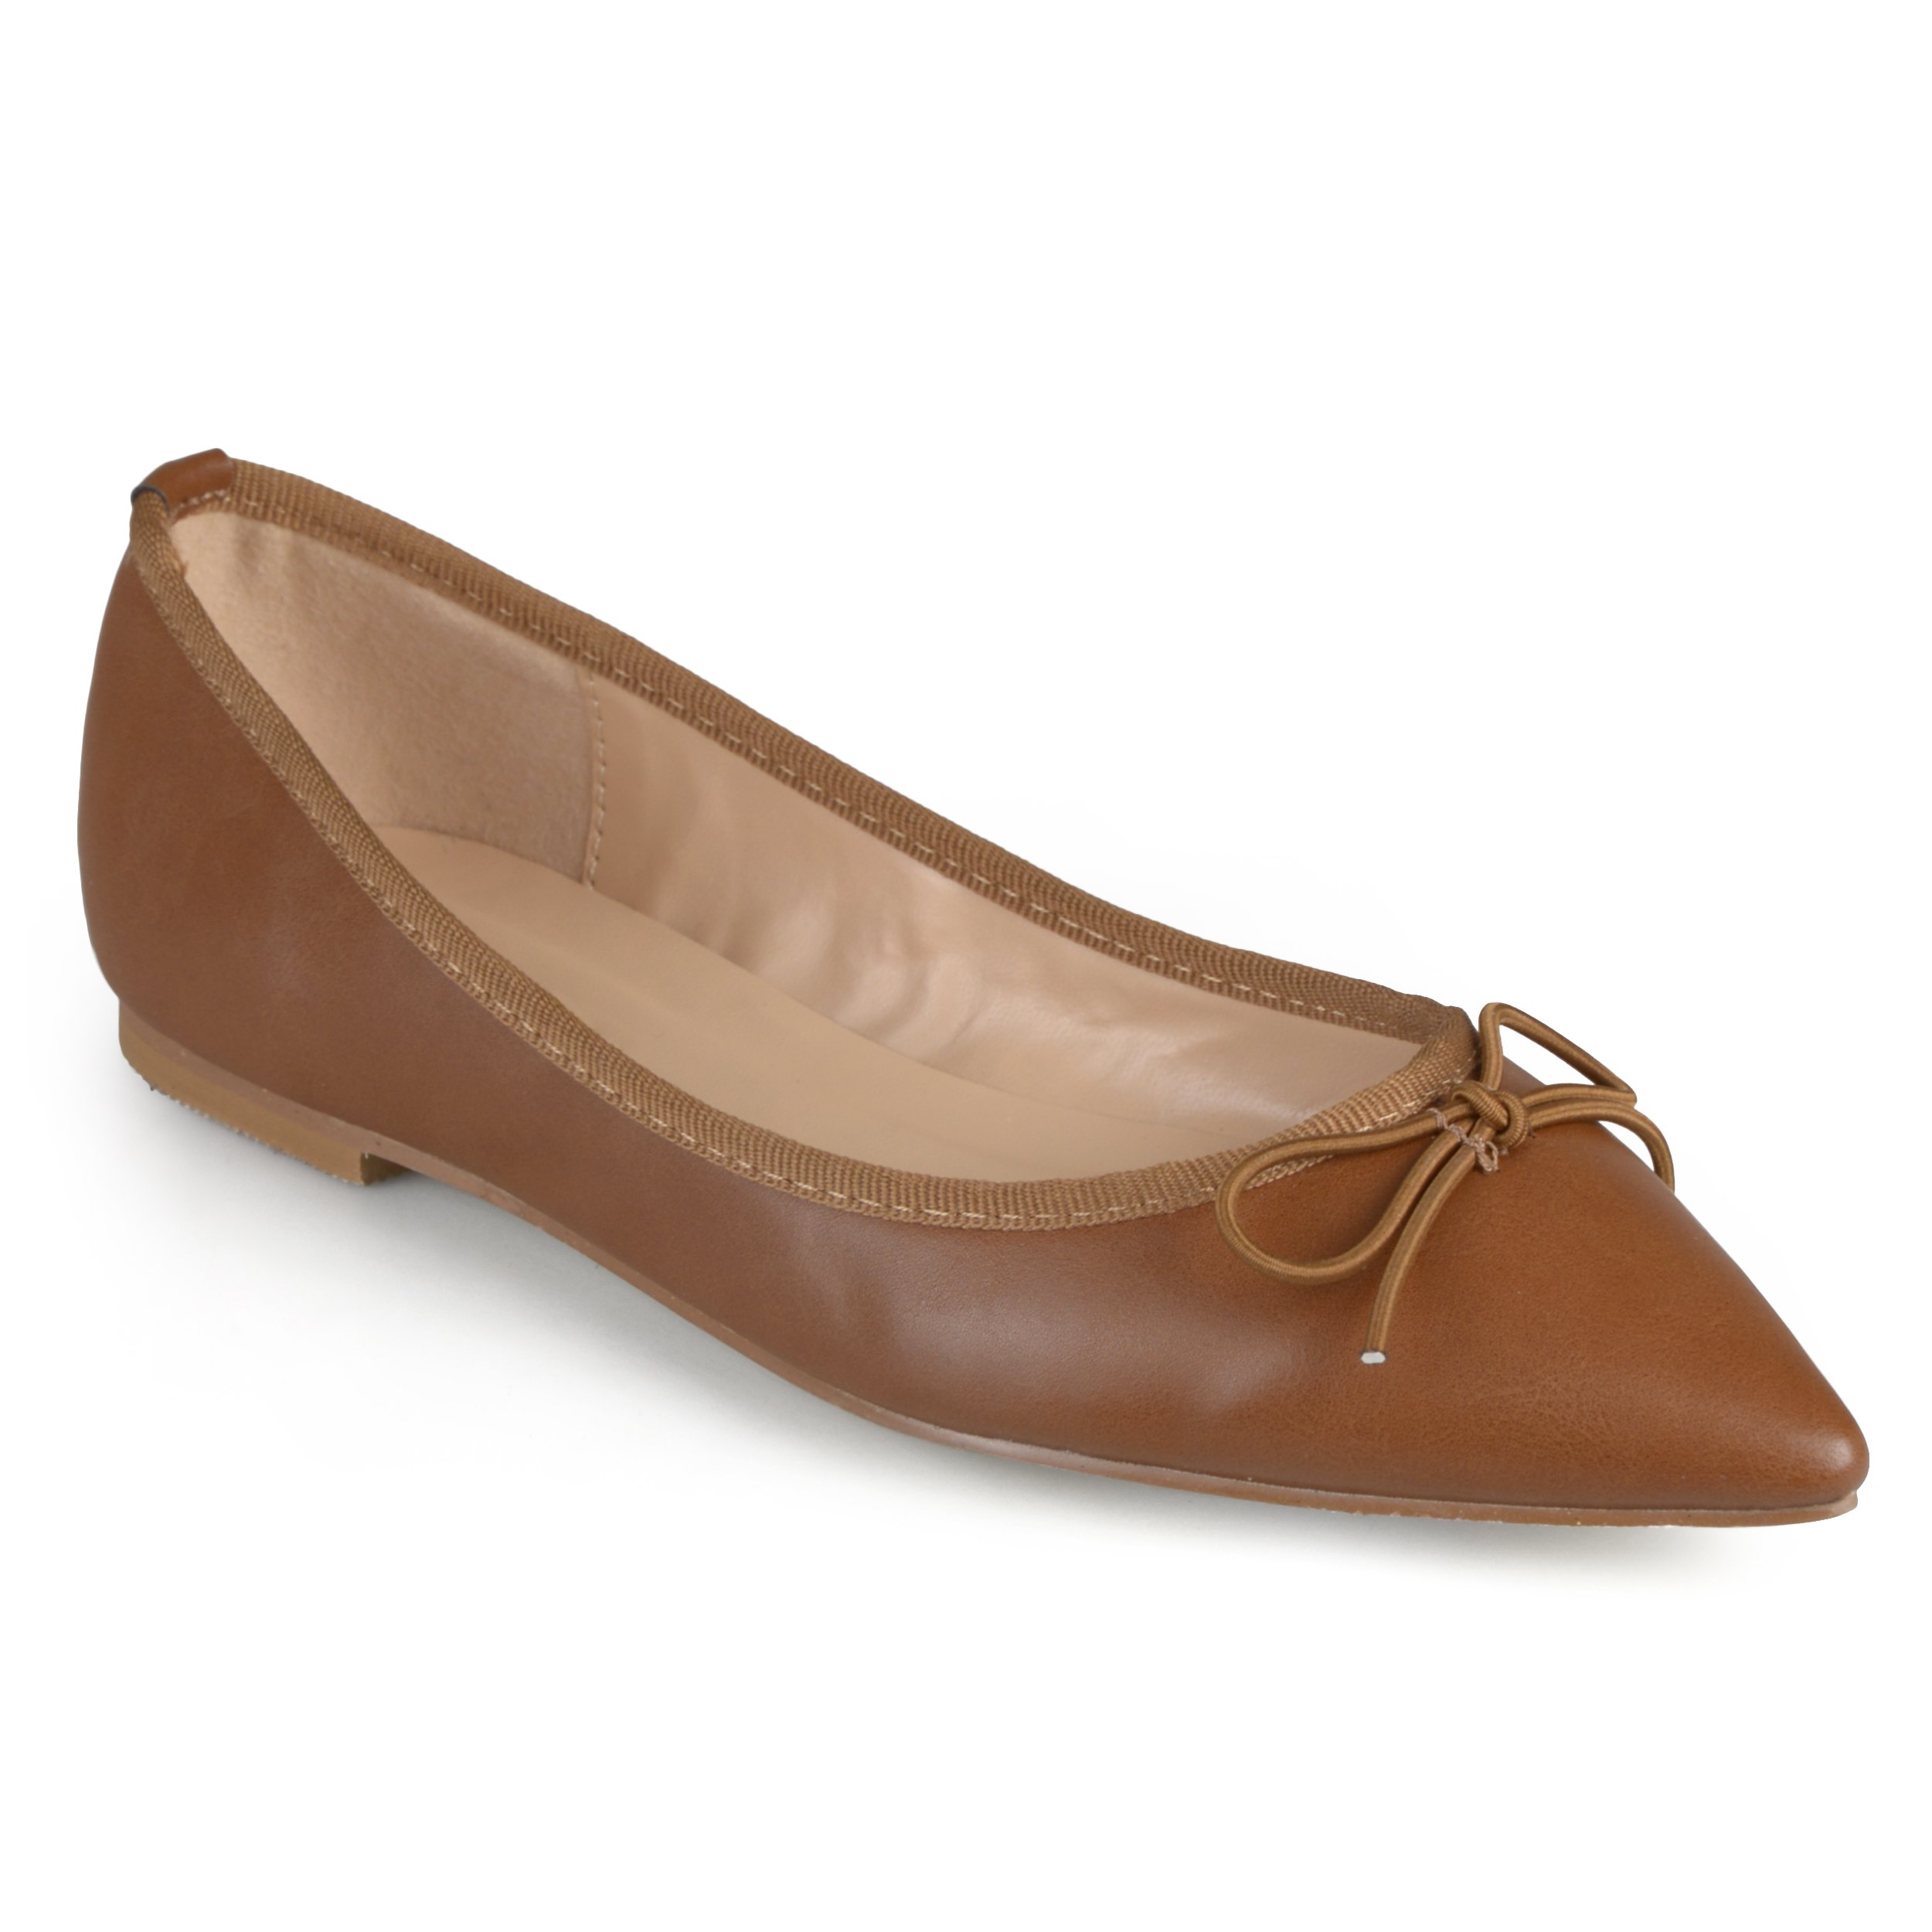 Journee Collection Womens Pointed Toe Bow Ballet Flats Camel, 10 Regular US